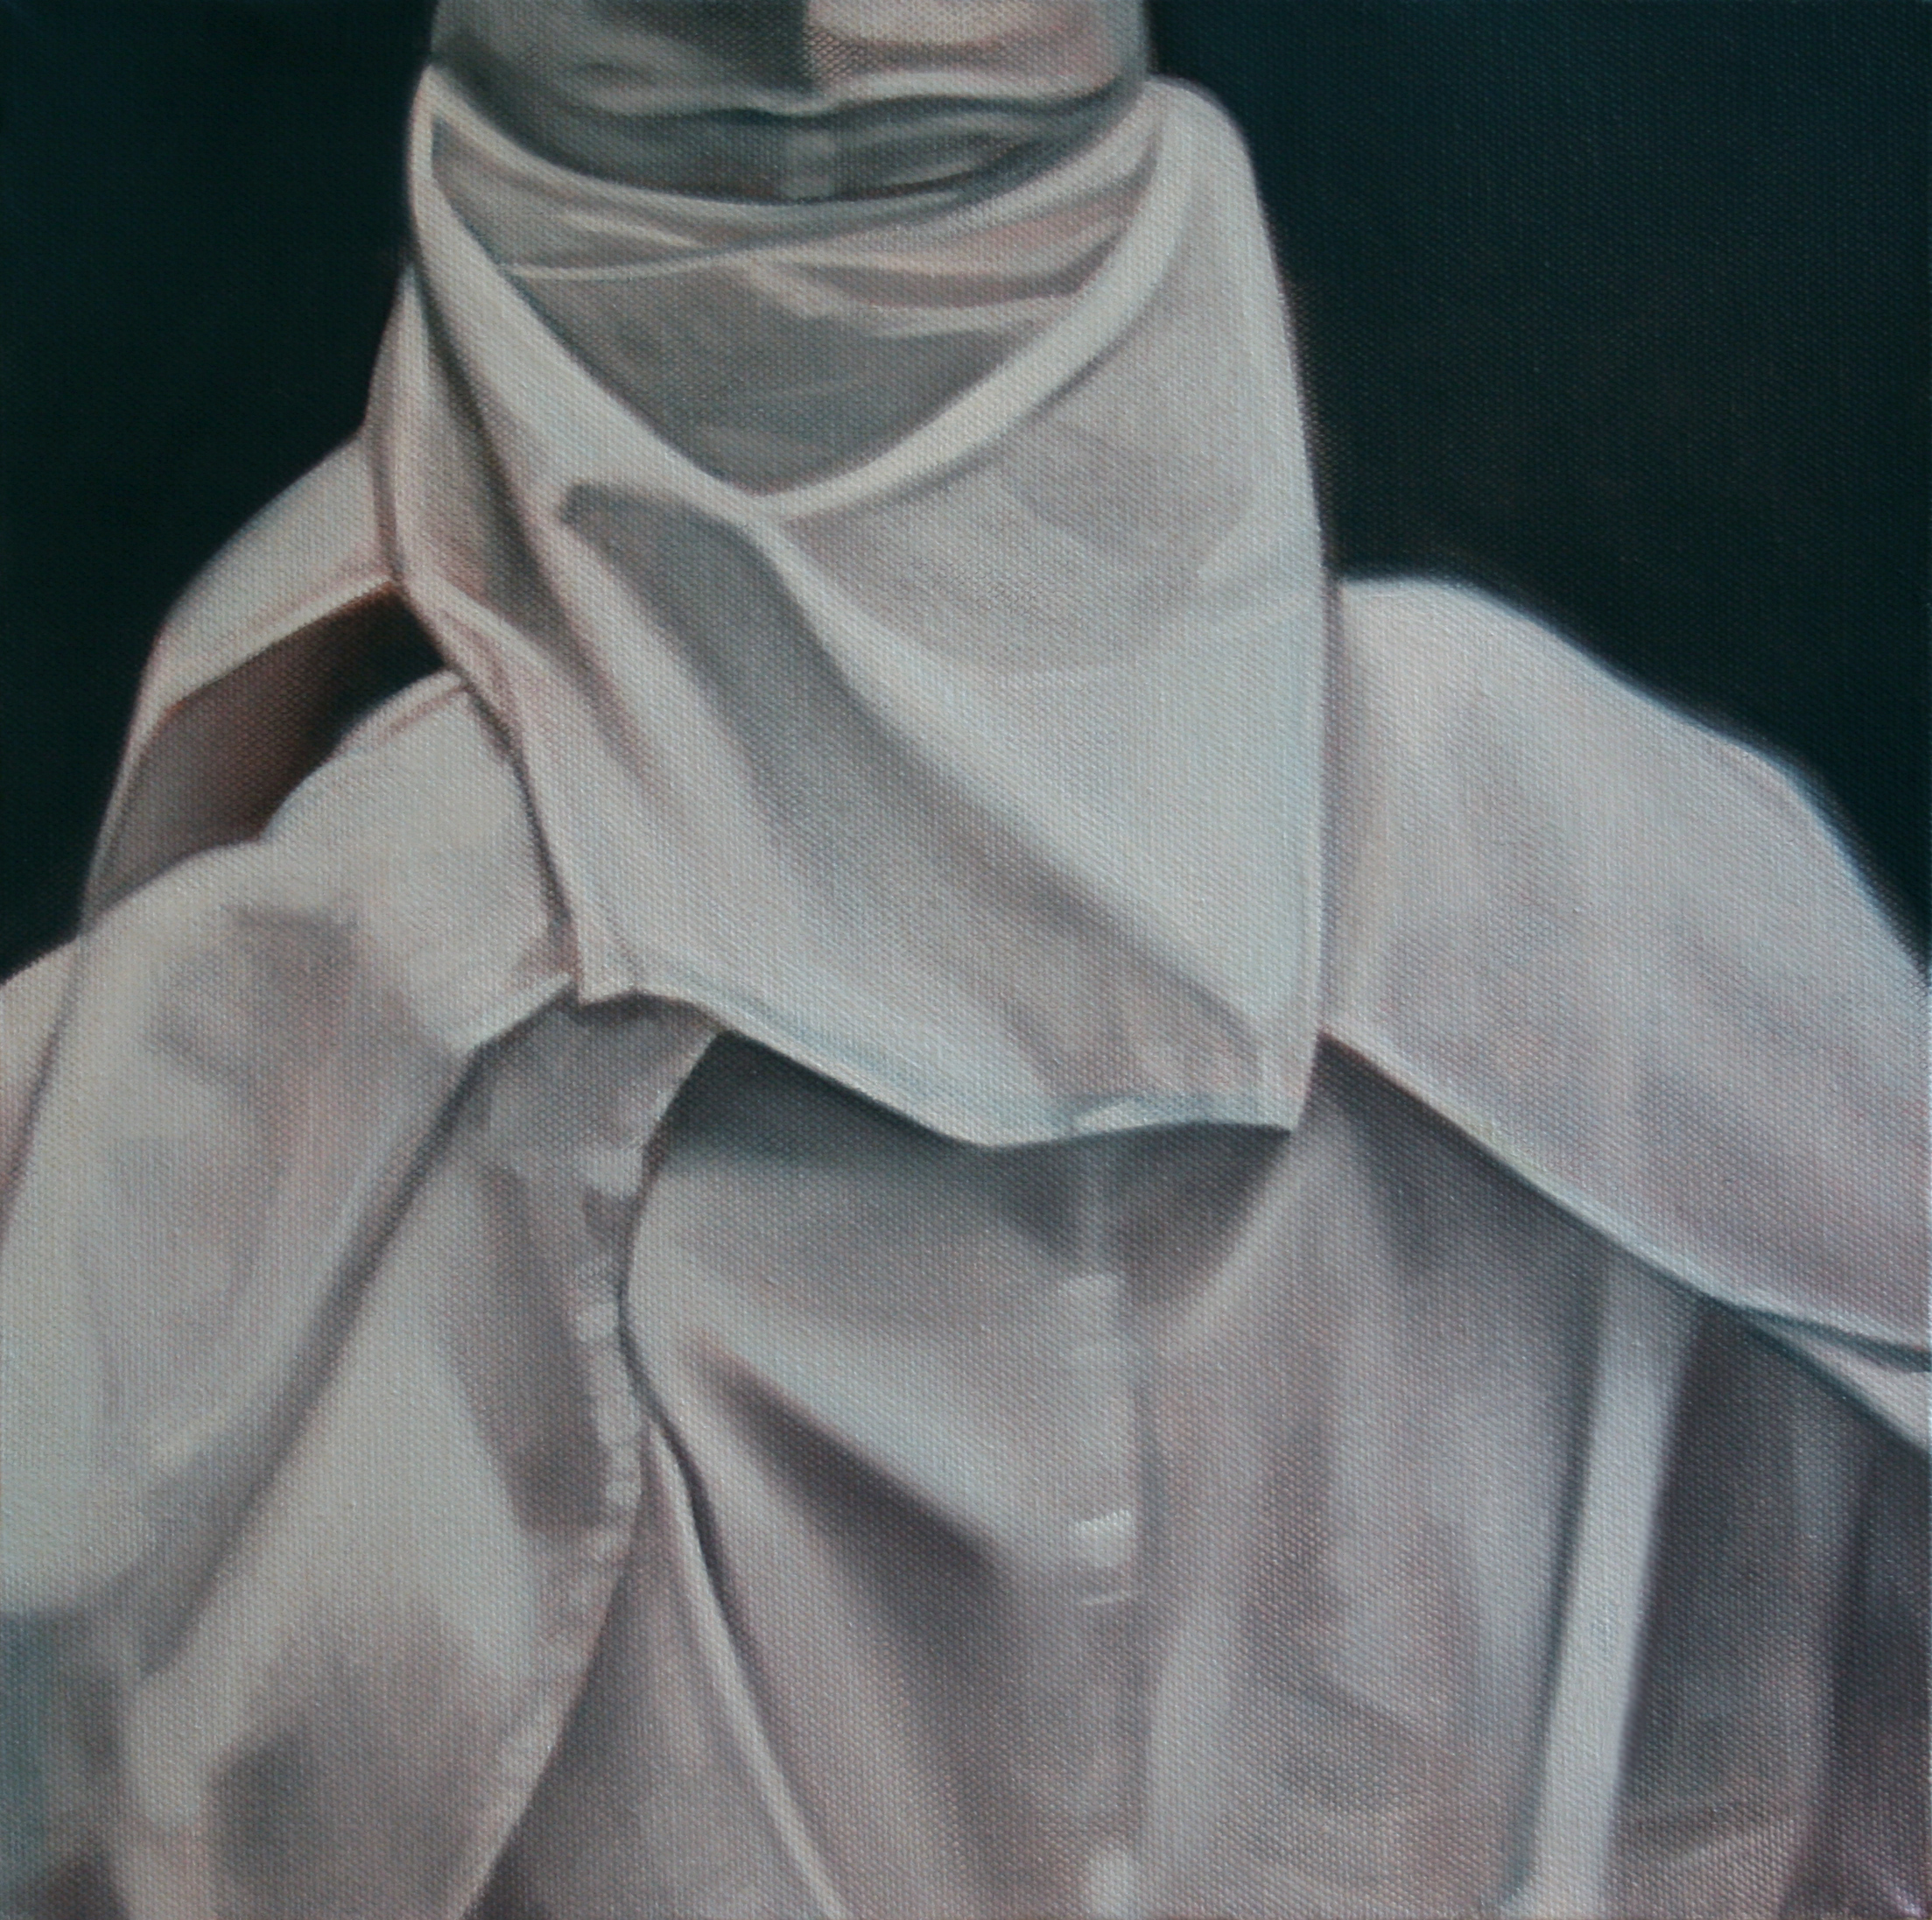 "White (Clansman), 16"" x 16"", oil on canvas, 2012"